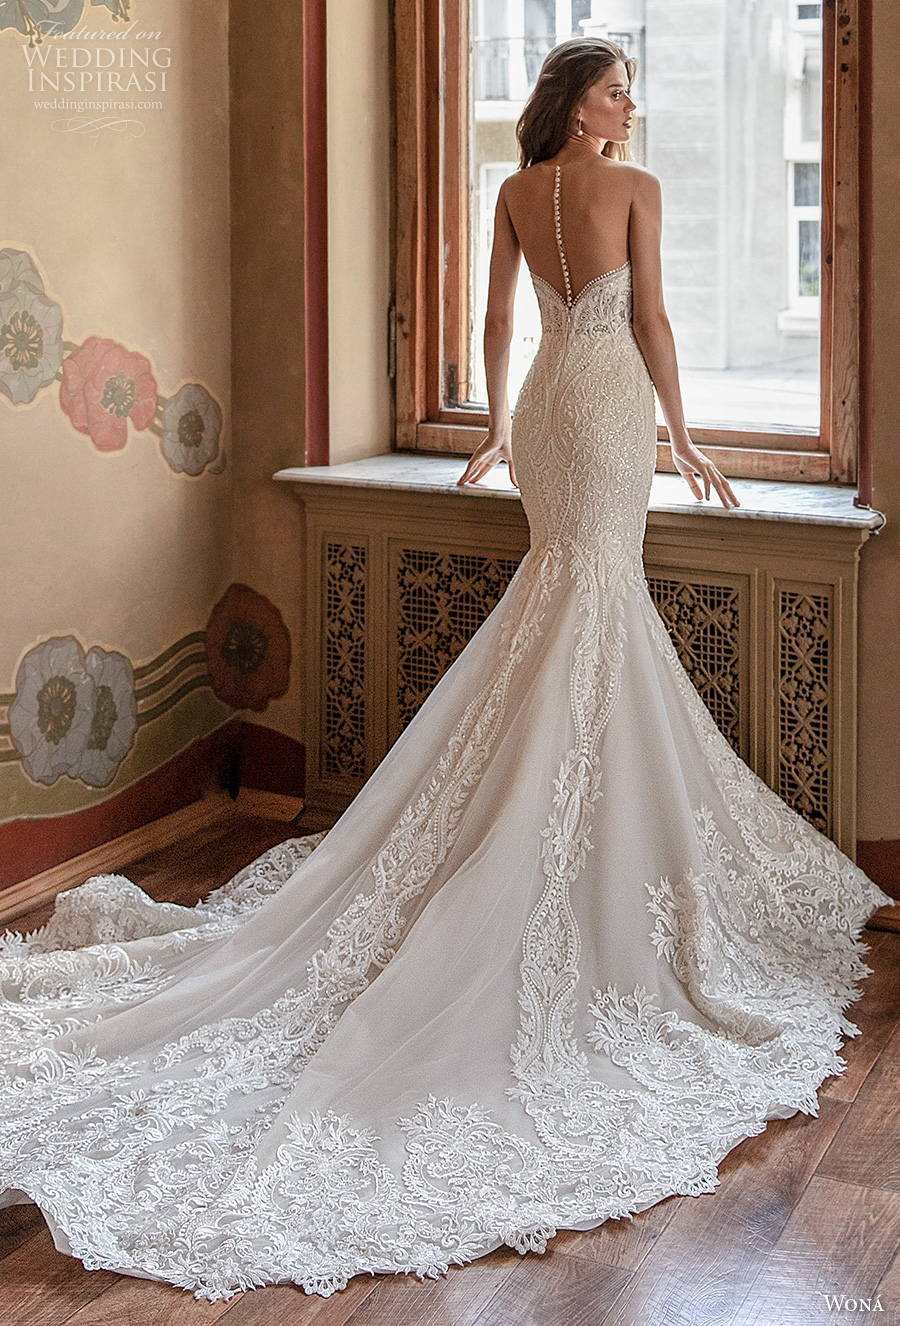 wona concept 2021 romance bridal strapless sweetheart neckline full embellishment mermaid wedding dress sheer button back chapel train (15) bv